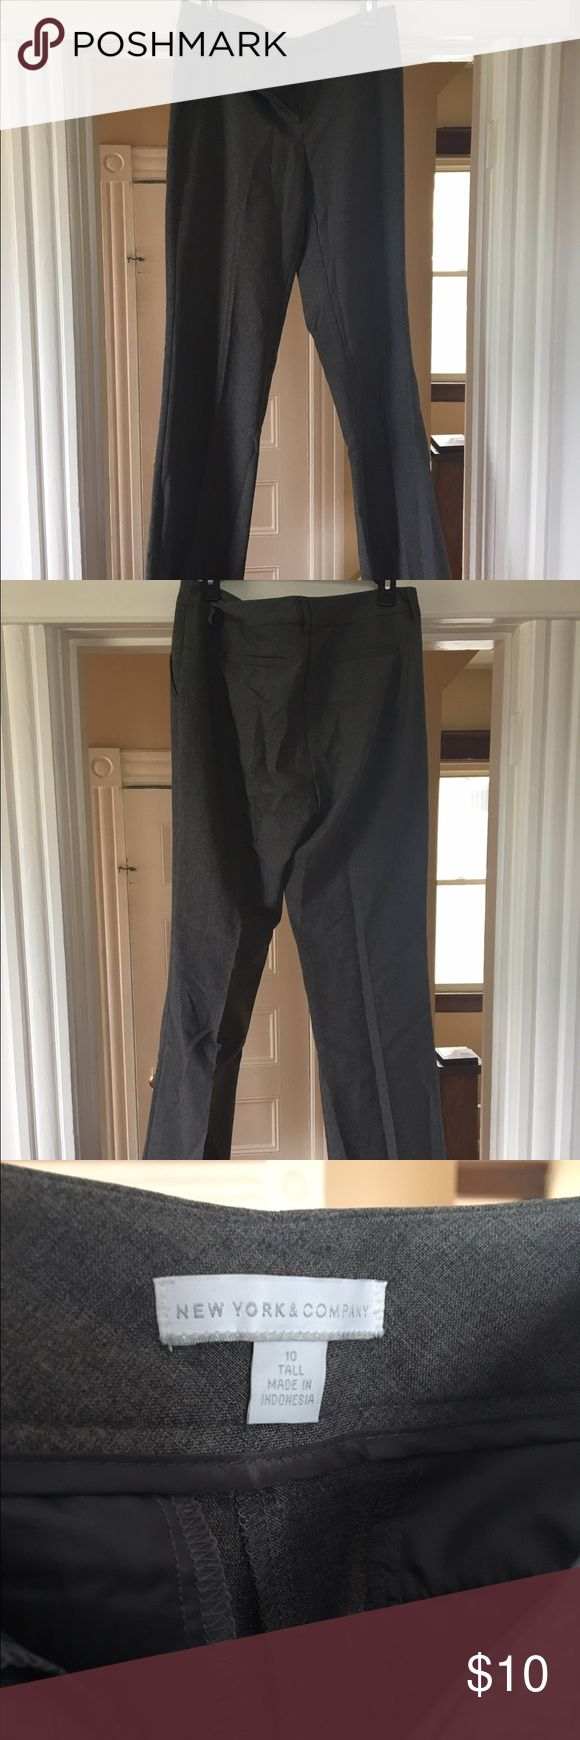 New York and company size 10 tall trousers Charcoal grey, worn one size 10 tall. Material is polyester. Pants Trousers